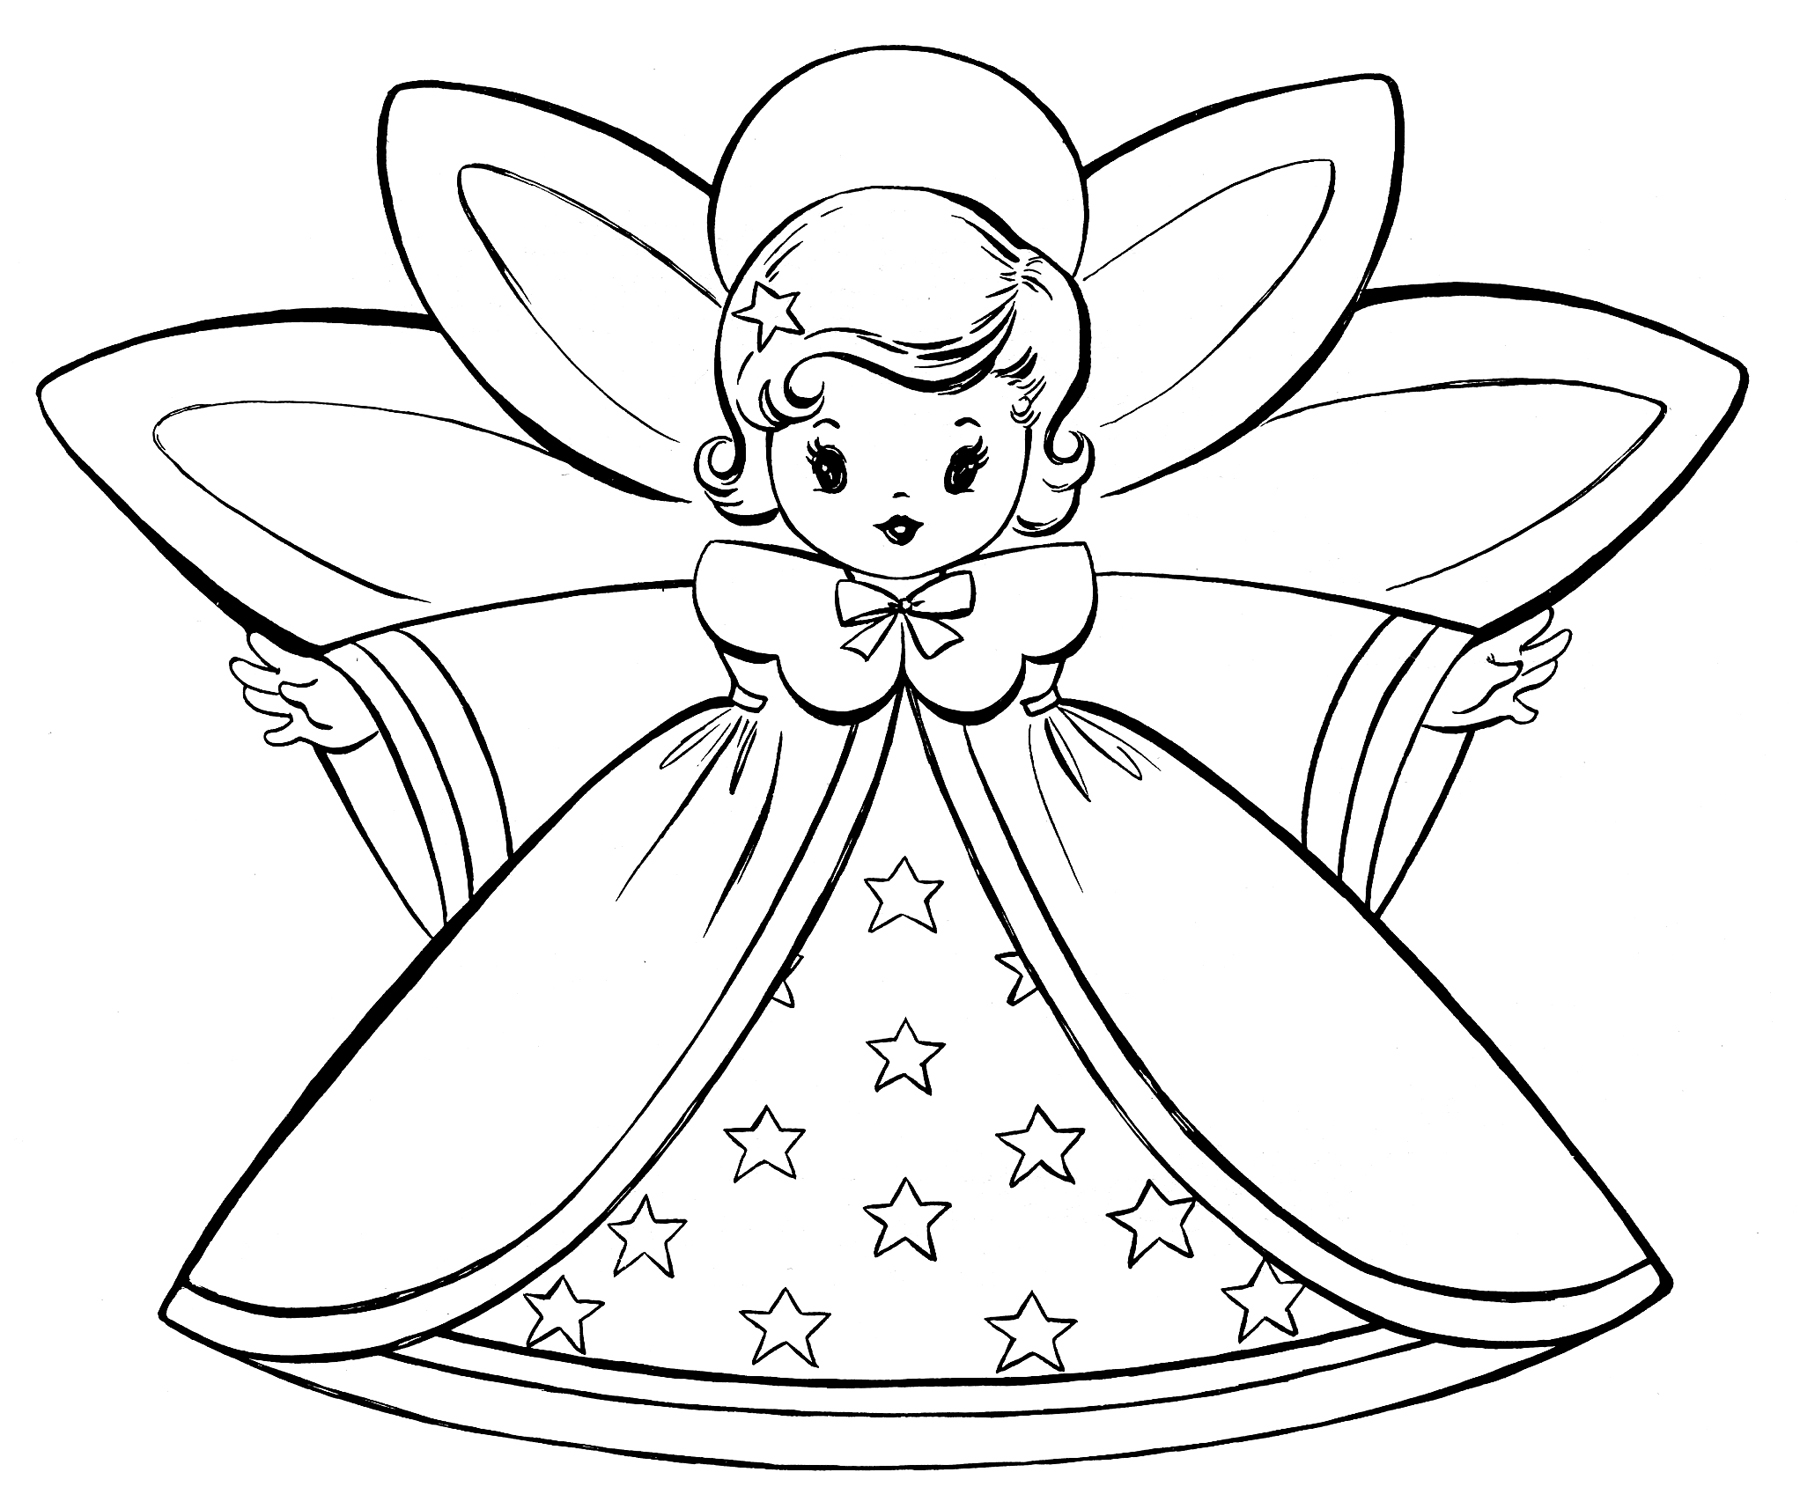 christmas color sheet christmas tree coloring pages for childrens printable for free christmas color sheet